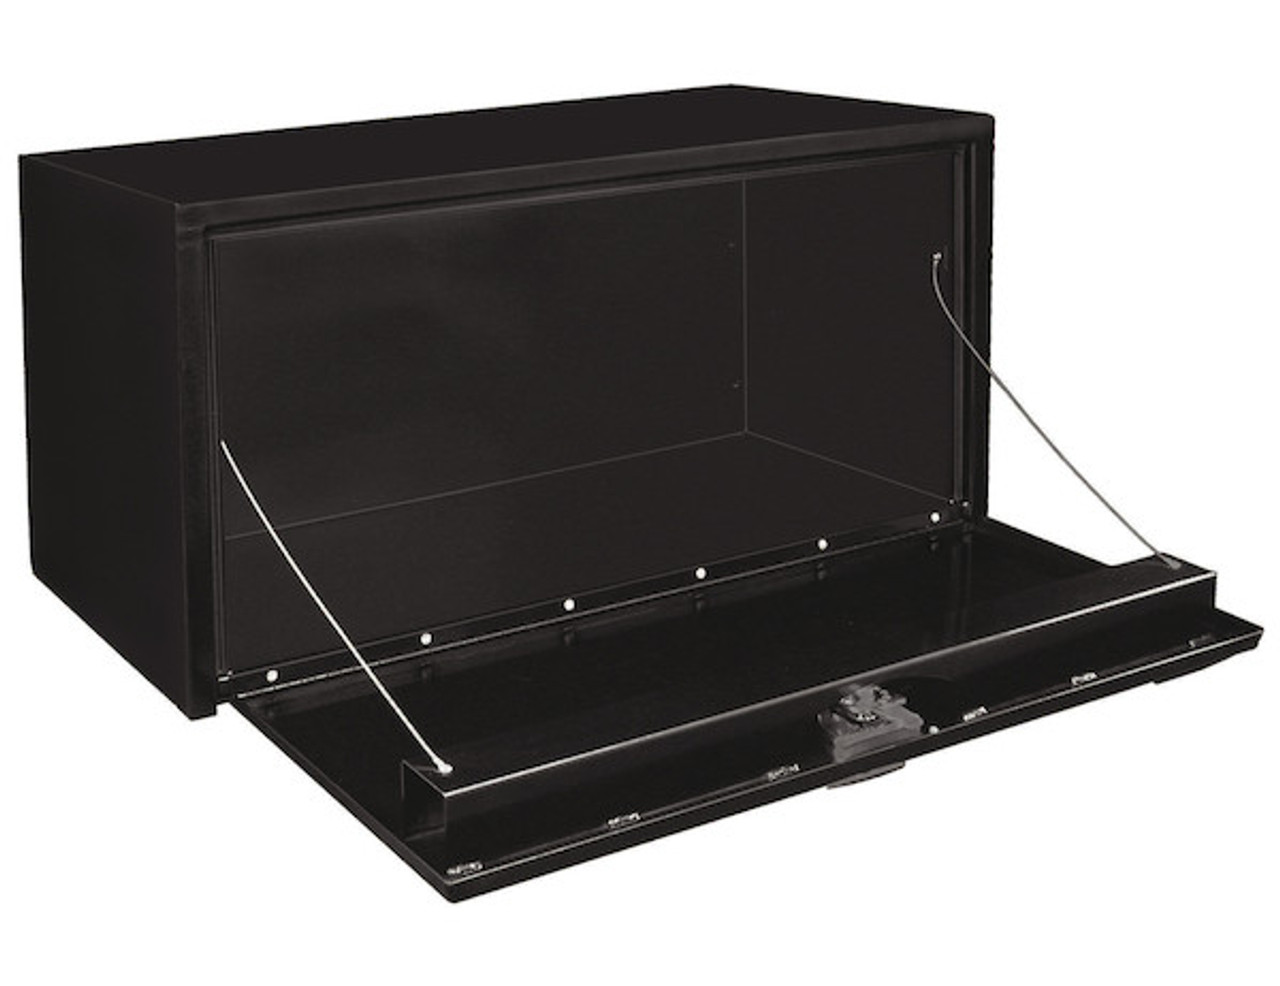 "1703312 BUYERS PRODUCTS BLACK STEEL UNDERBODY TRUCK TOOLBOX WITH T-LATCH 15""HX10""DX24""W"